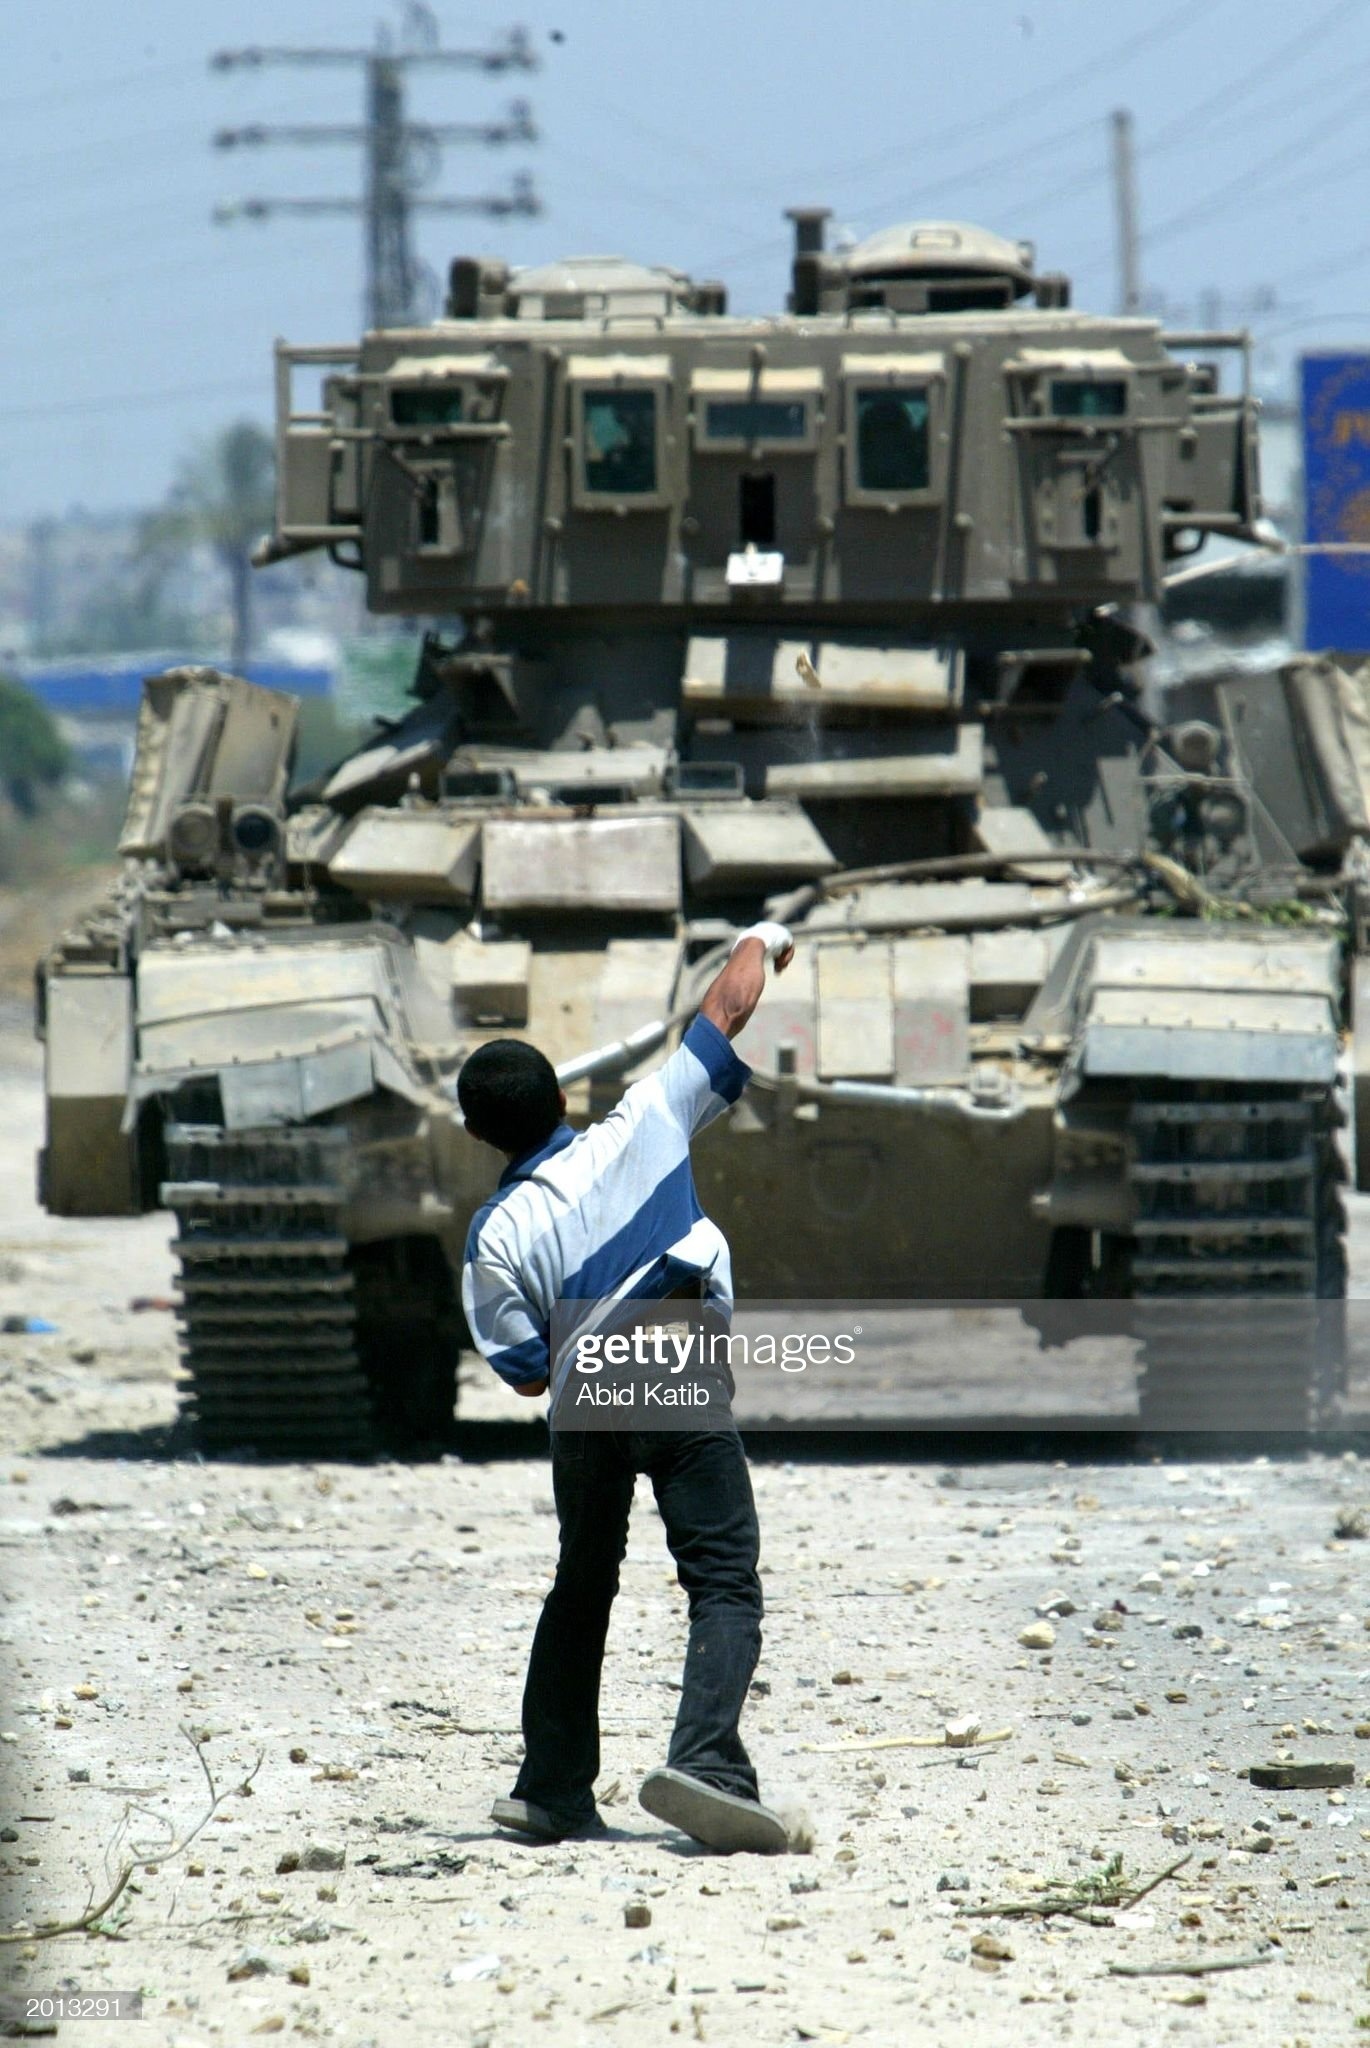 https://media.gettyimages.com/photos/palestinian-boy-throws-a-stone-at-an-israeli-tank-during-a-clash-may-picture-id2013291?s=2048x2048